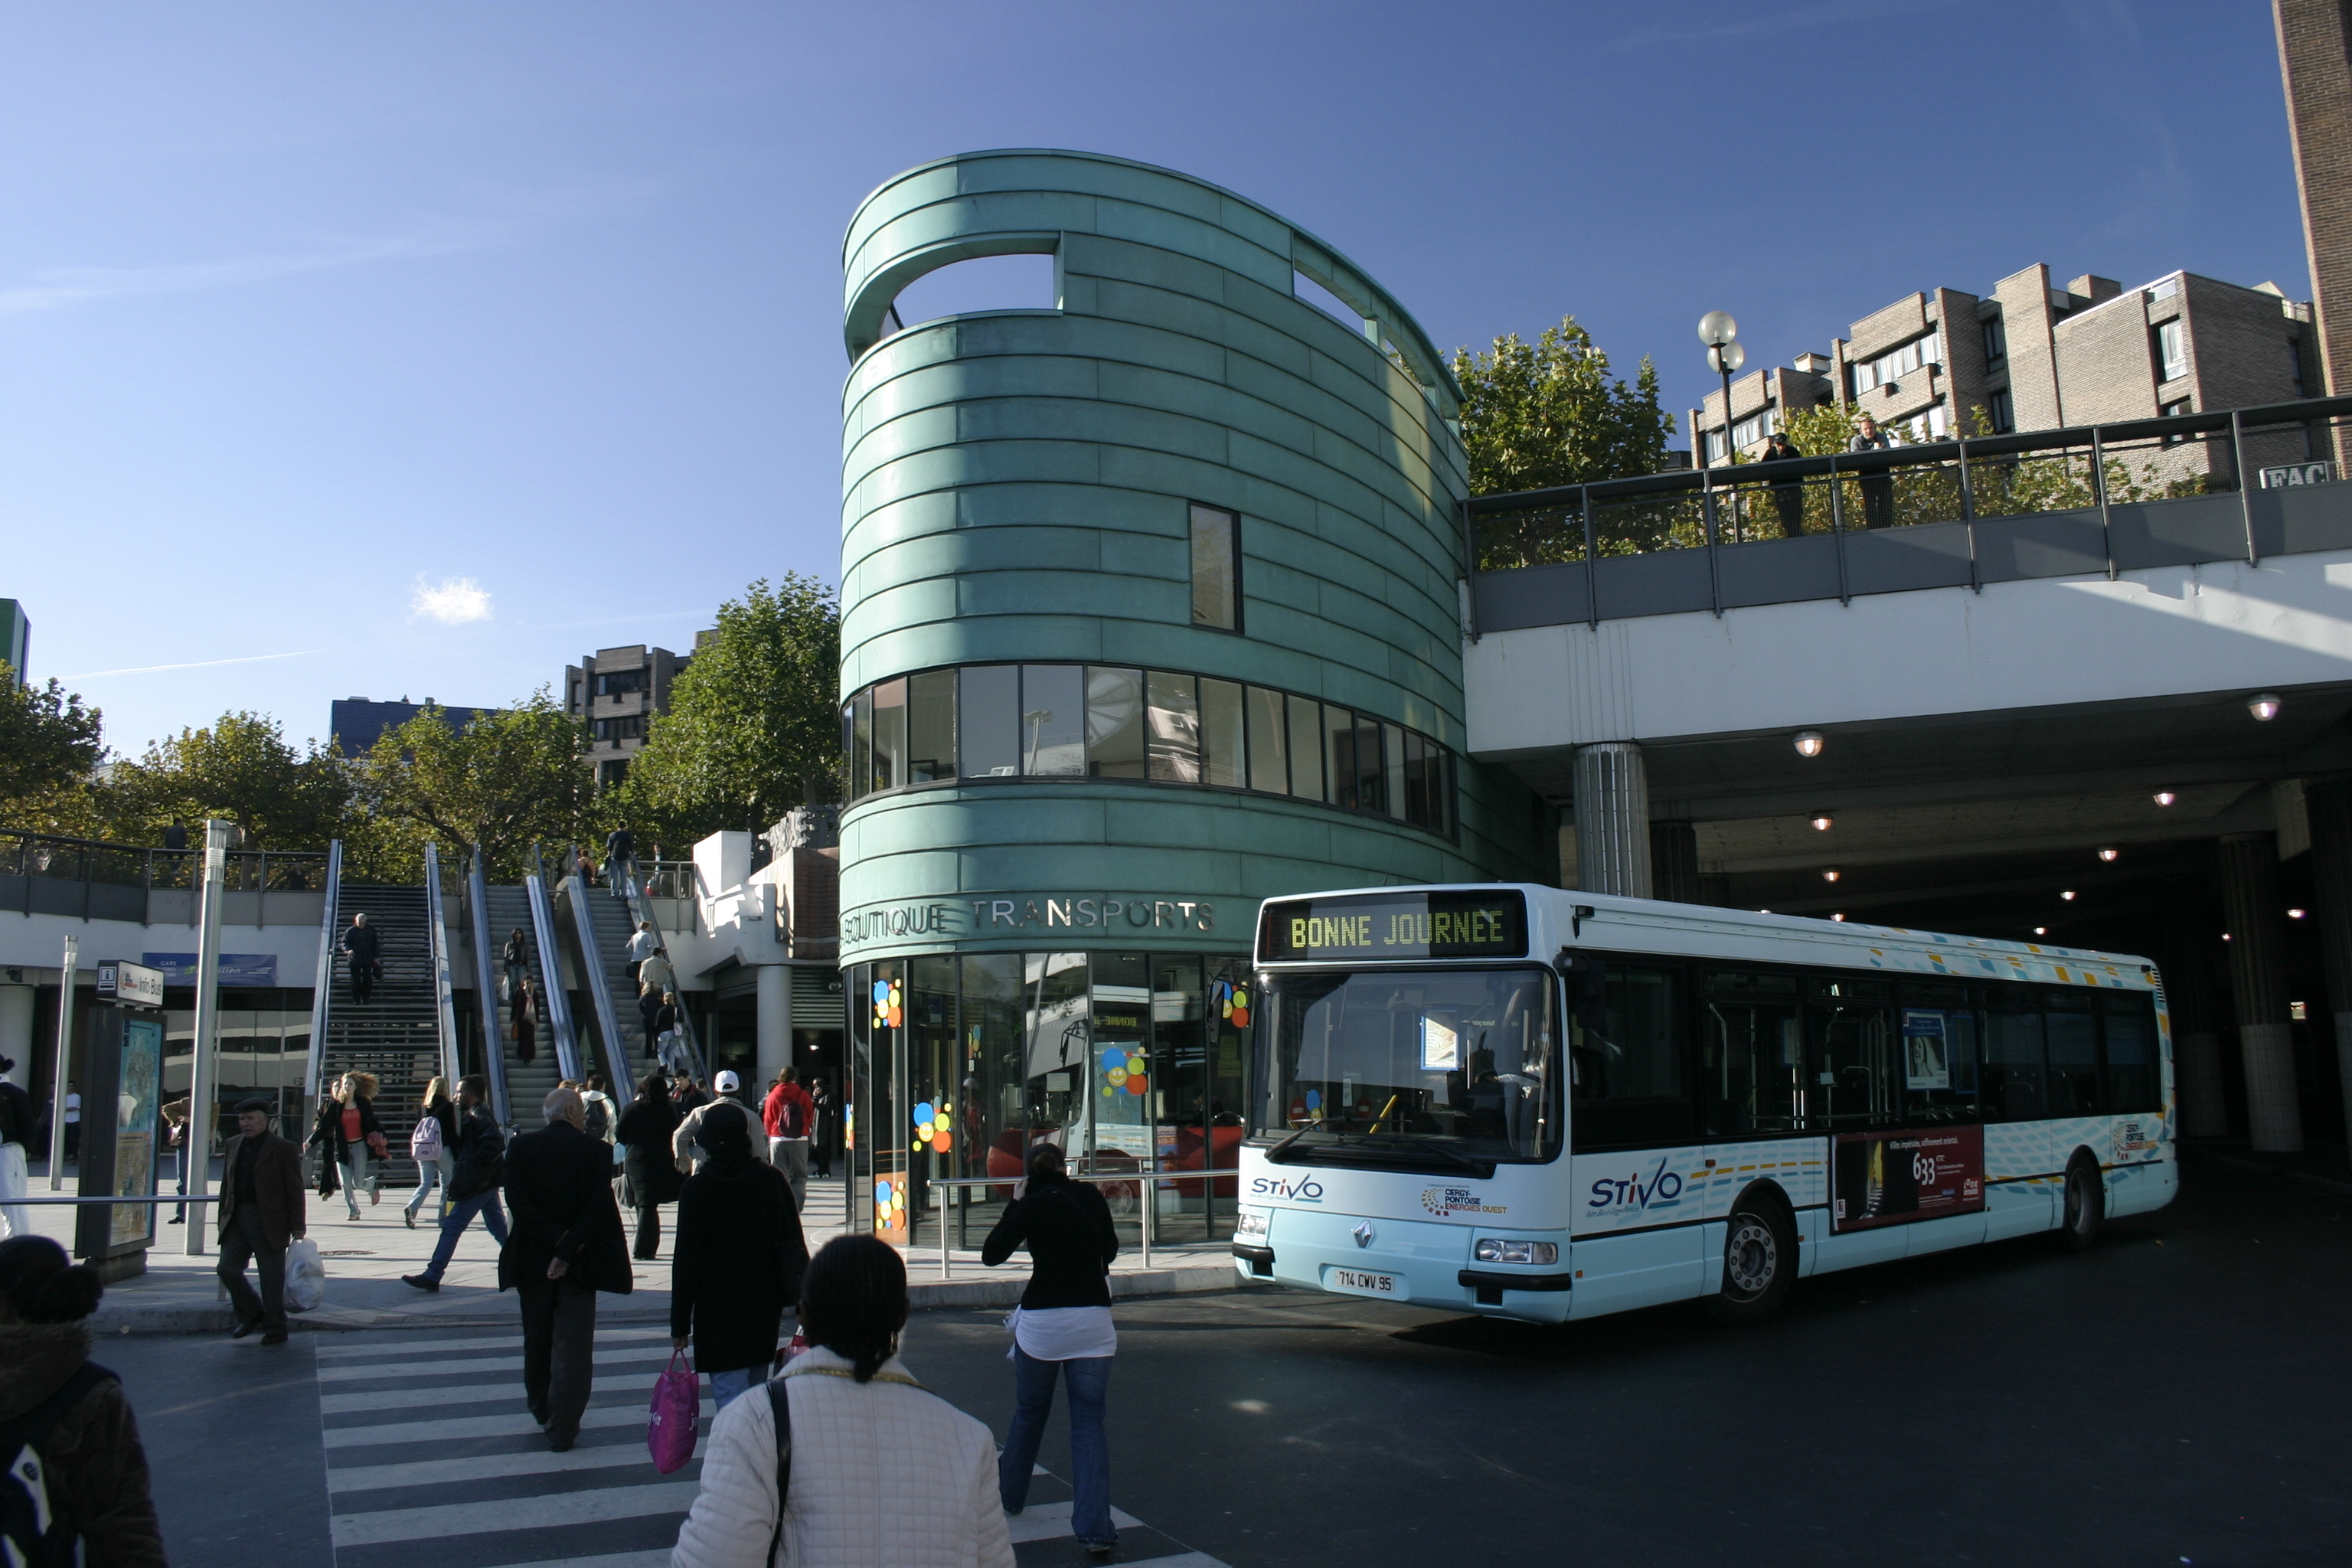 Paris Bourges Bus Cergy Pontoise Ratpdev